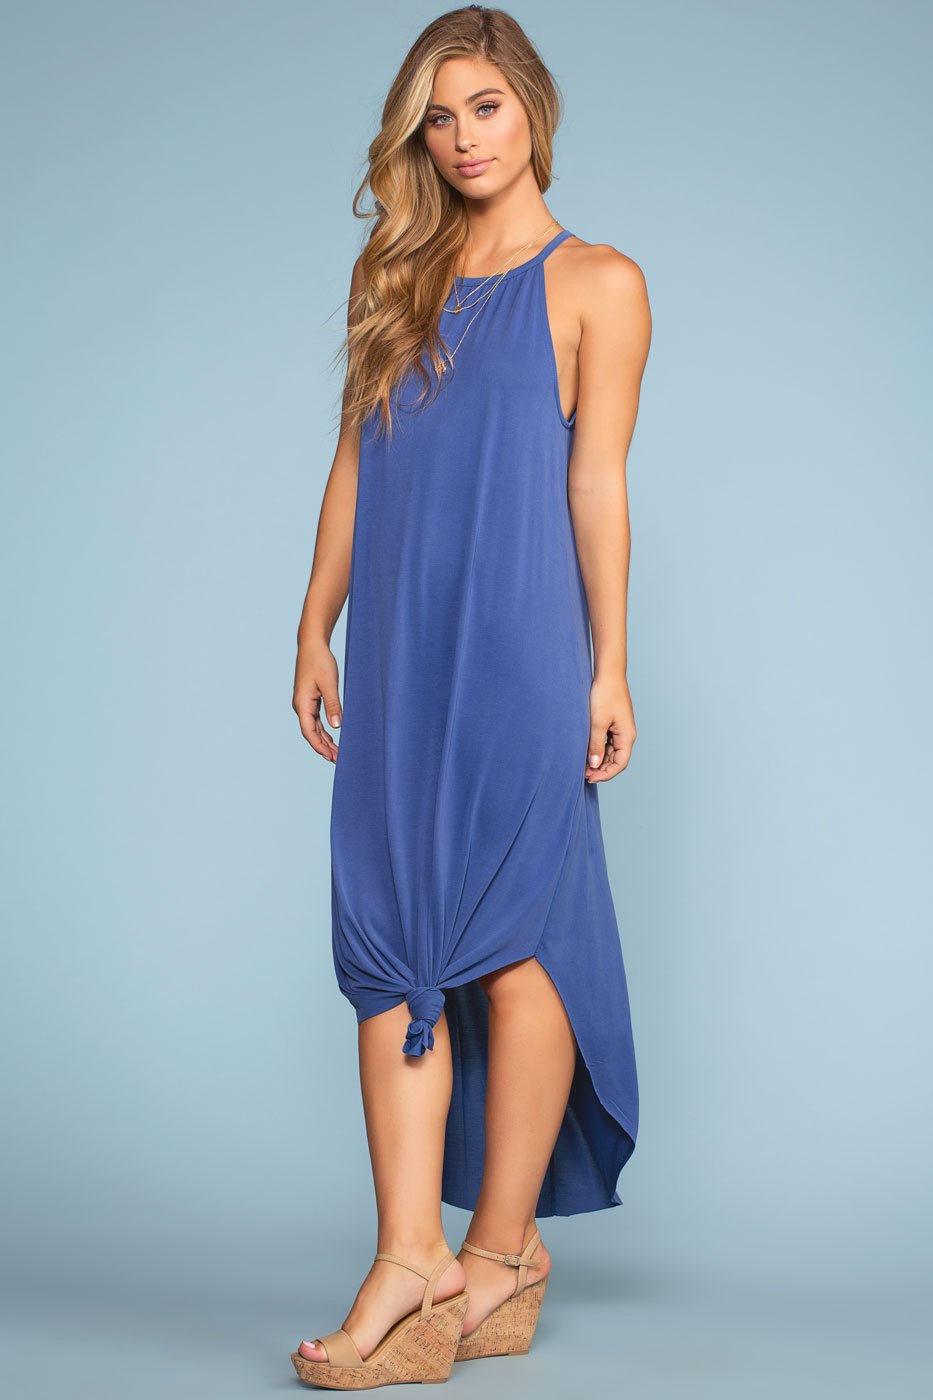 Dresses - Sandbar Maxi Dress - Blue